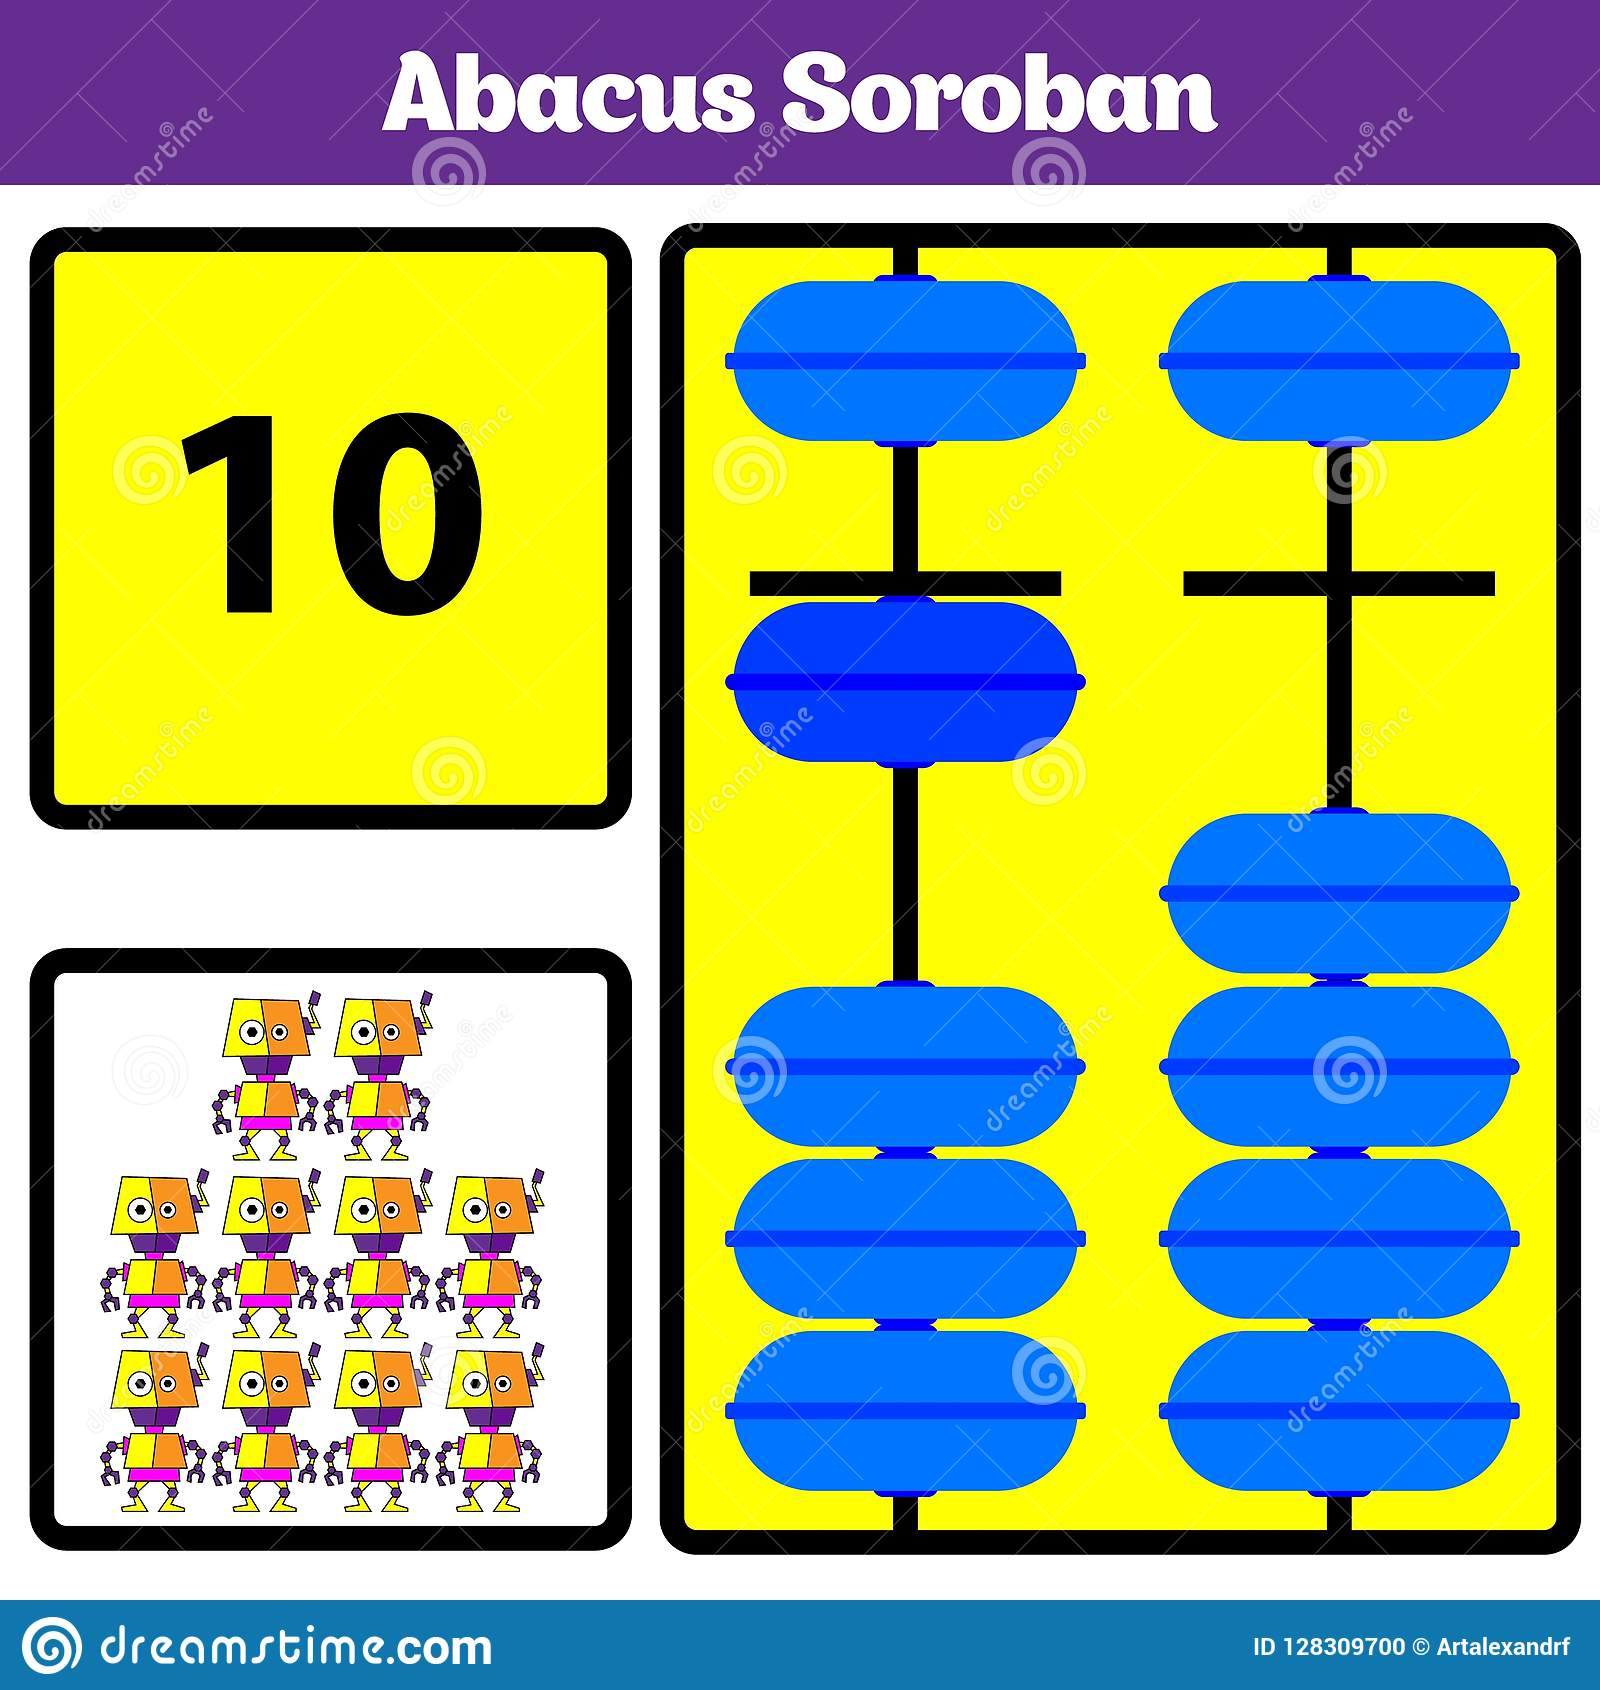 Abacus Soroban Kids Learn Numbers With Abacus Math